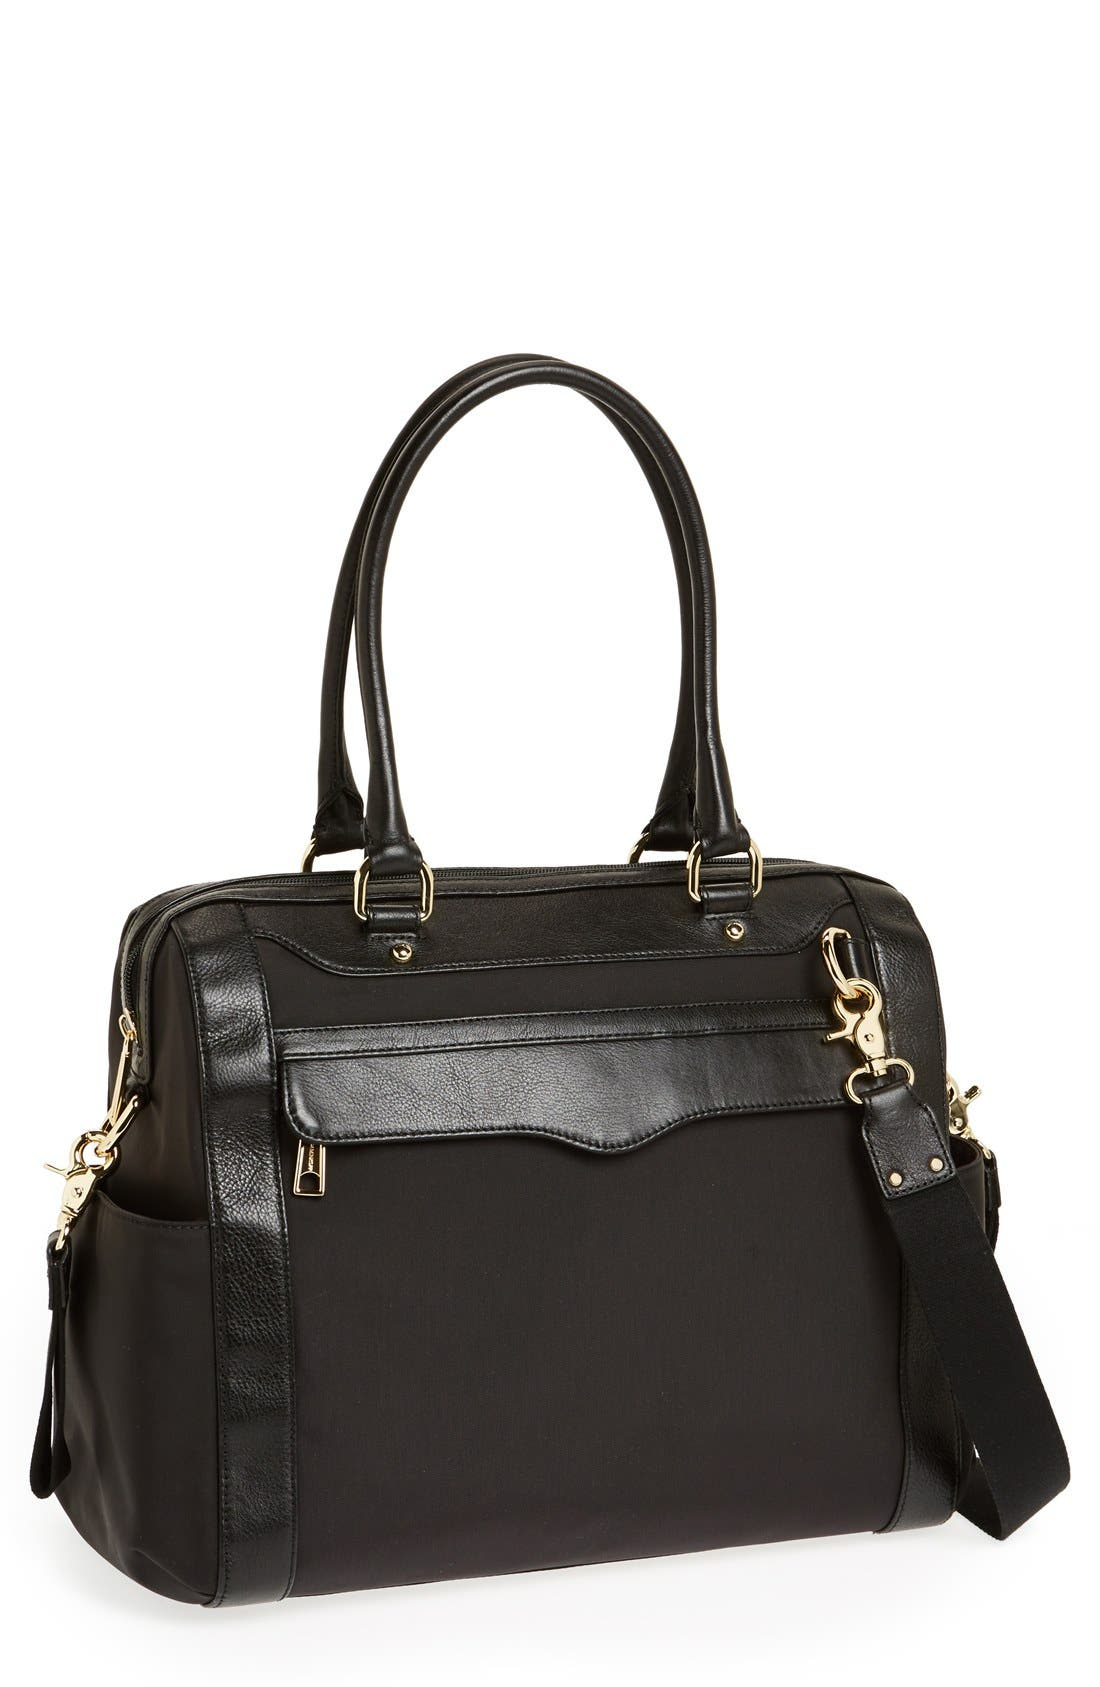 Rebecca Minkoff 'Knocked Up' Leather Diaper Bag